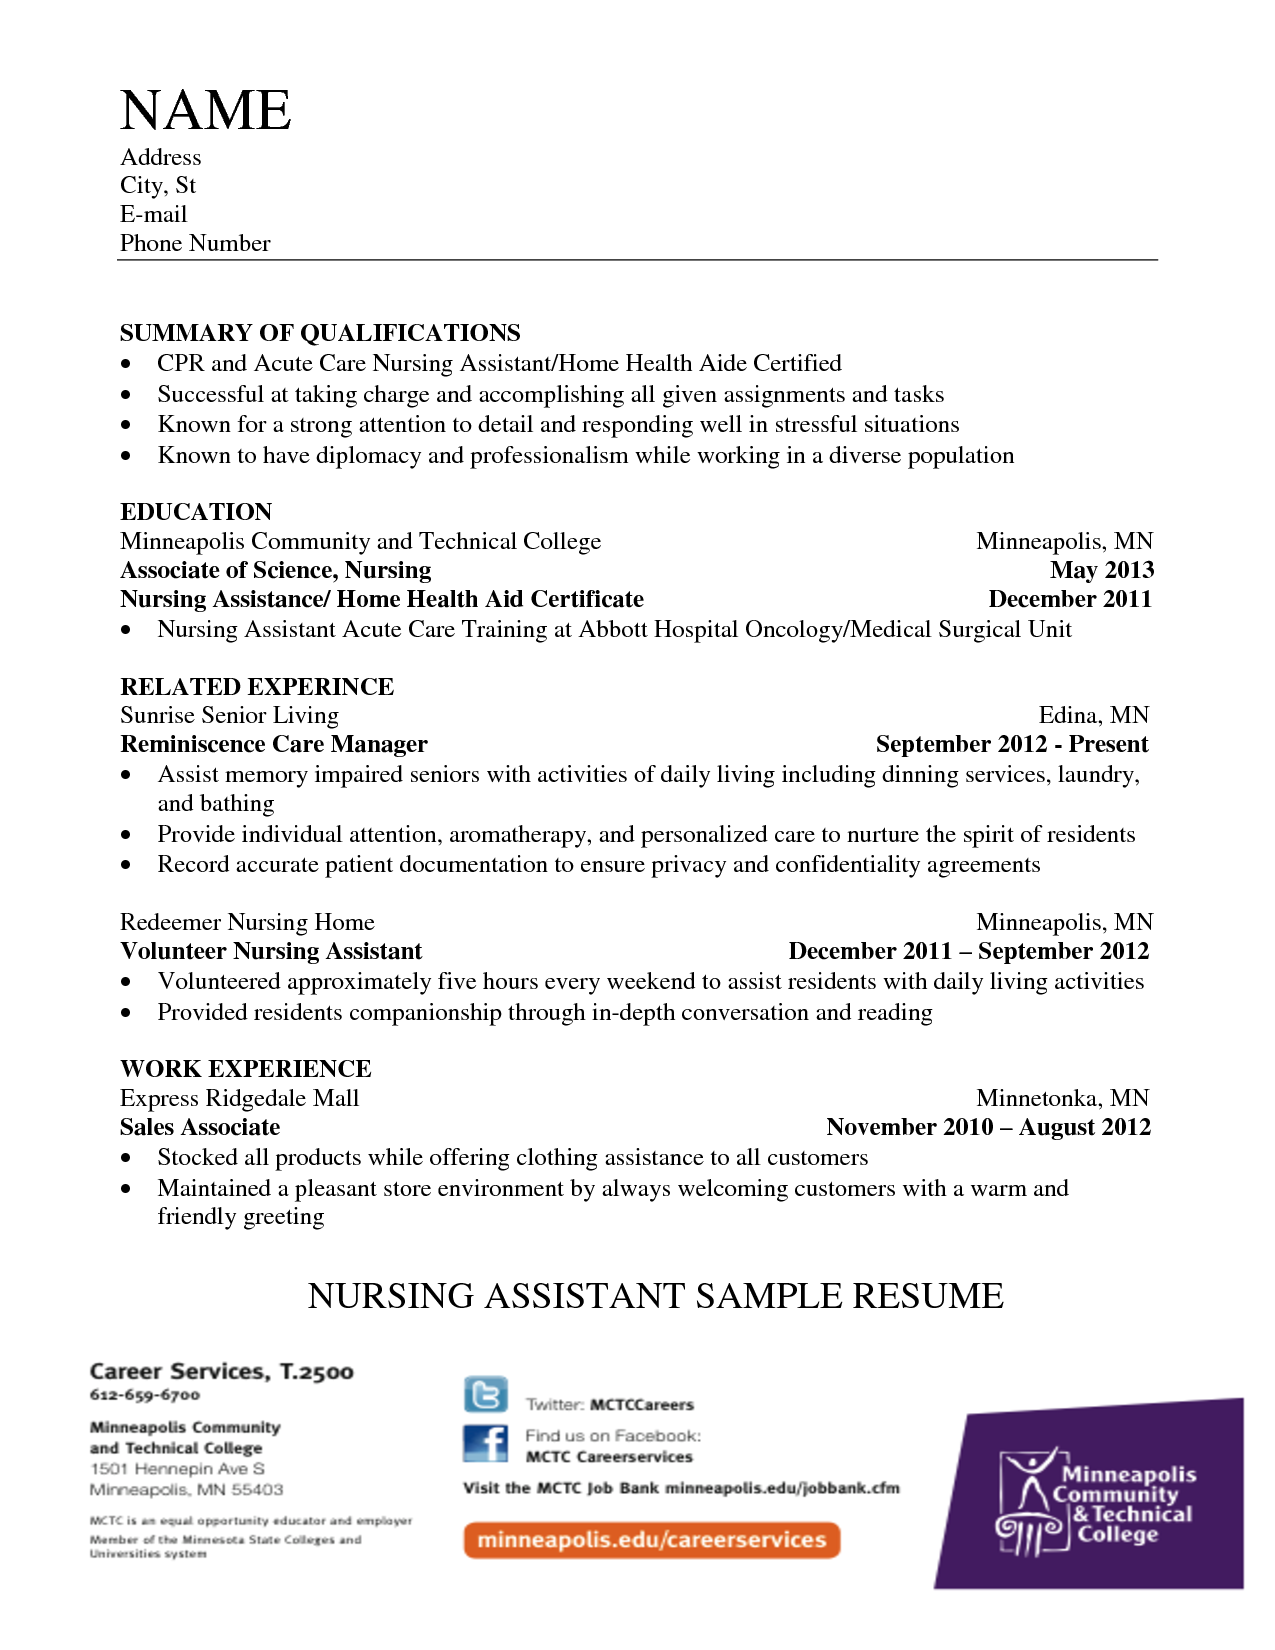 Home Health Nursing Assistant Resume Sample resume Pinterest